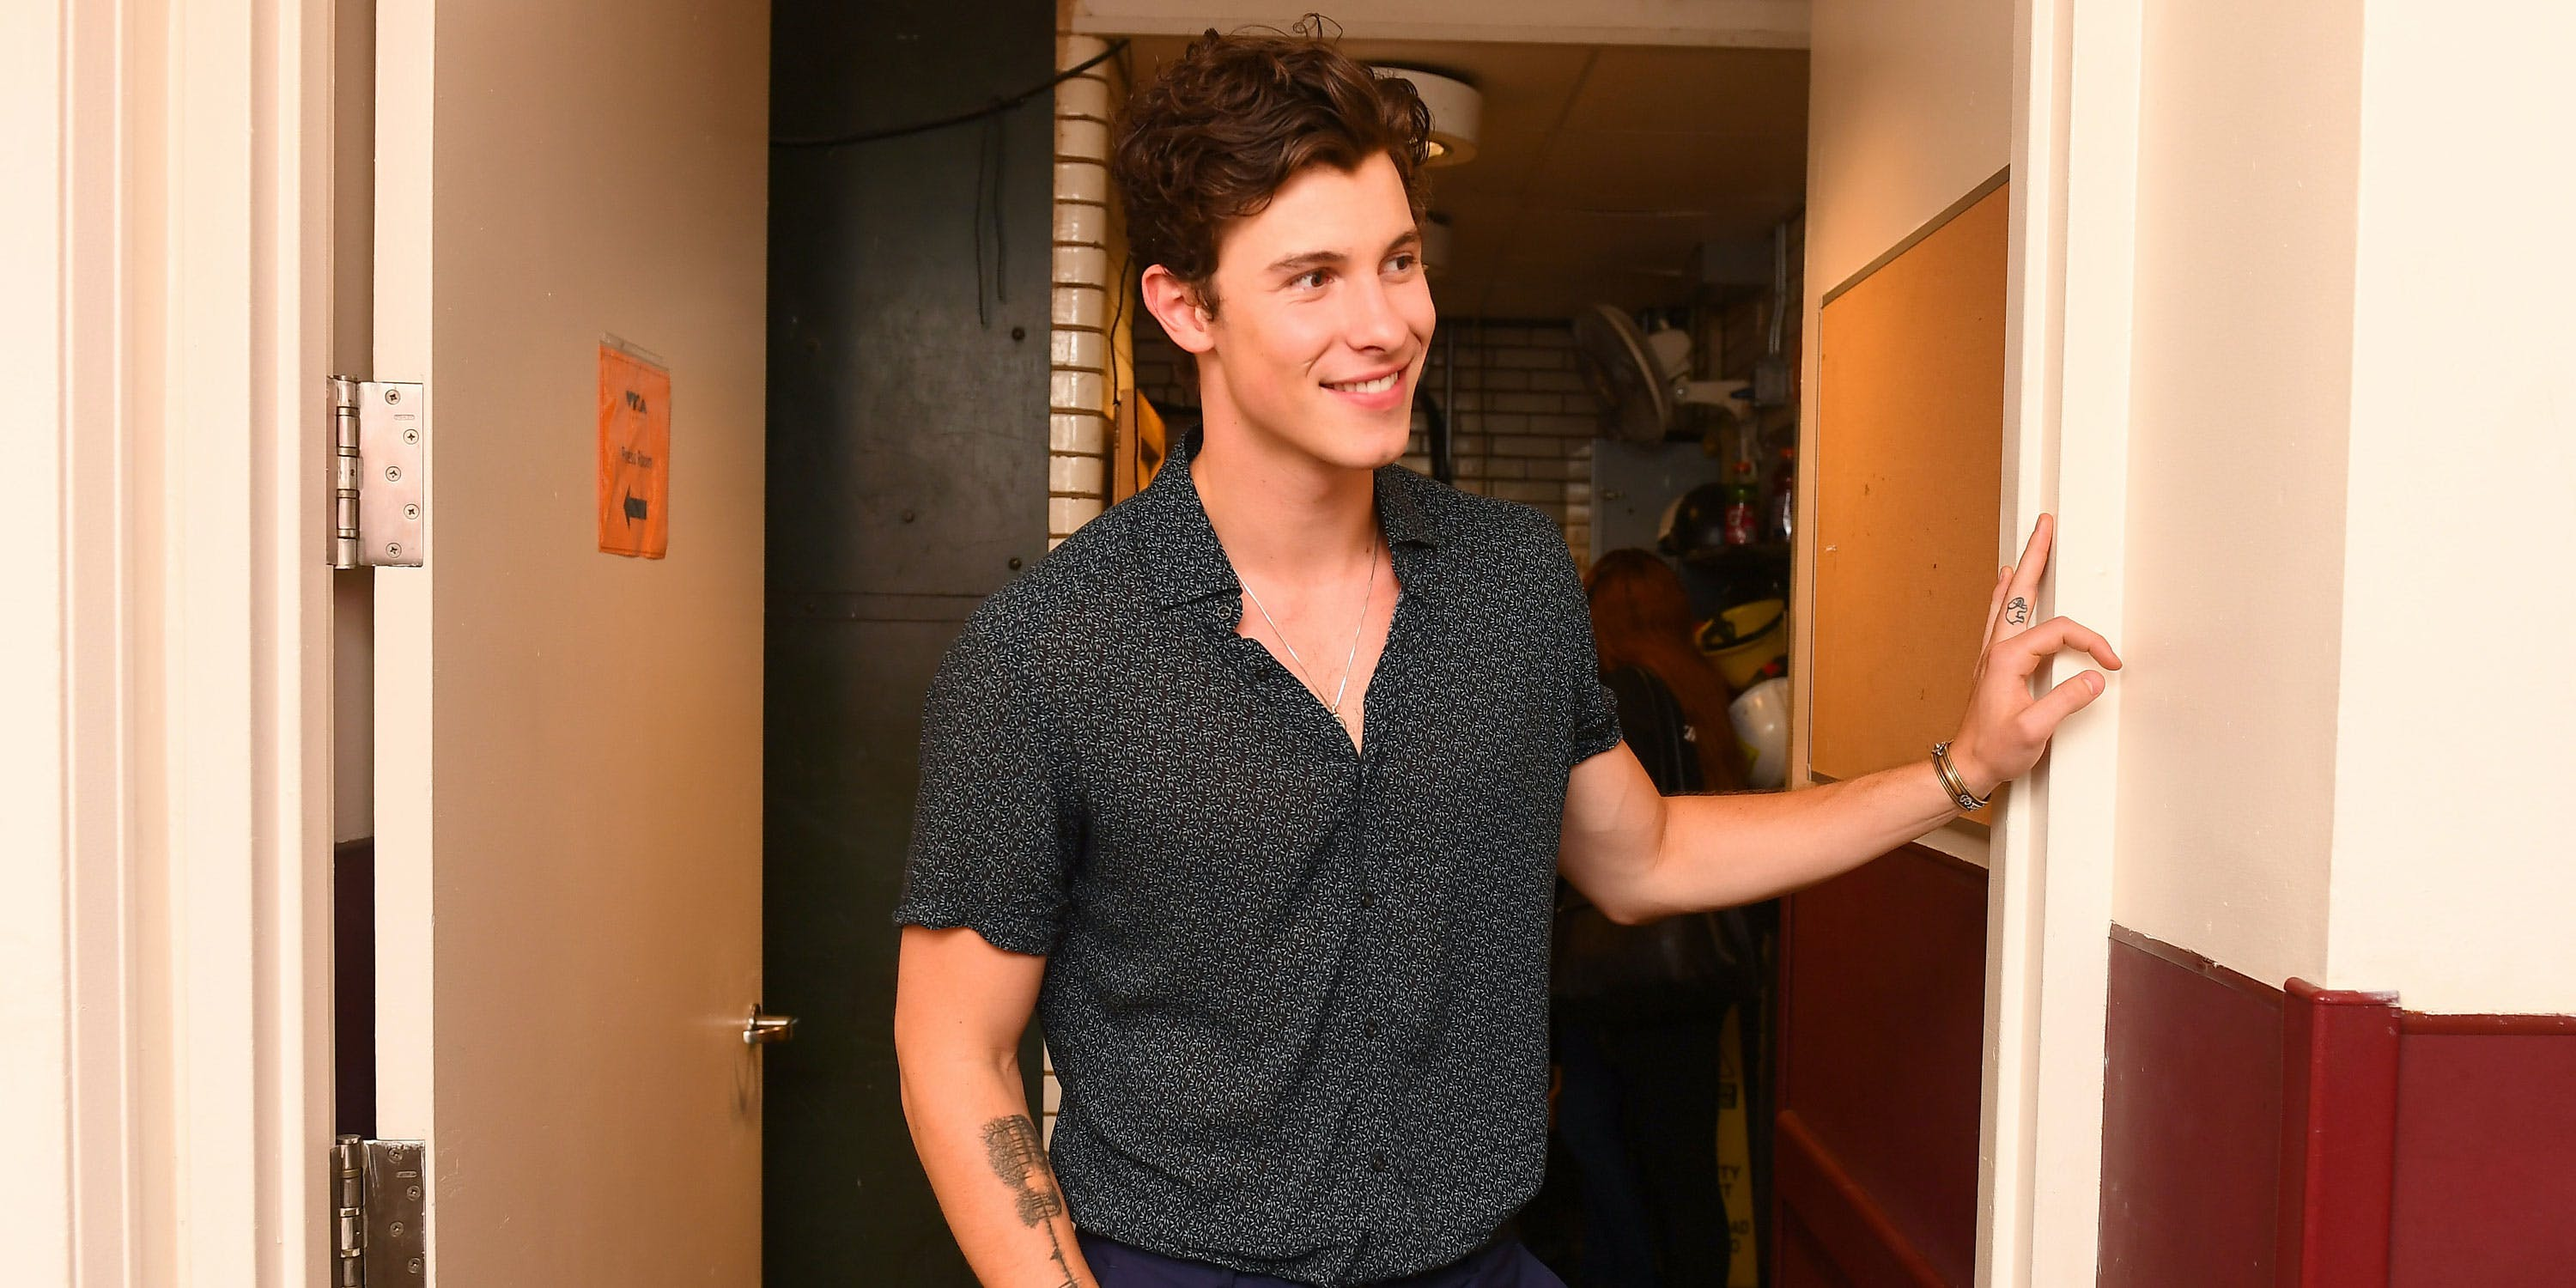 Shawn Mendes poses backstage during the 2018 MTV Video Music Awards at Radio City Music Hall on August 20, 2018 in New York City. He spoke with a reporter before the MMVAs about the best music for smoking weed. (Photo by Nicholas Hunt/VMN18/Getty Images)